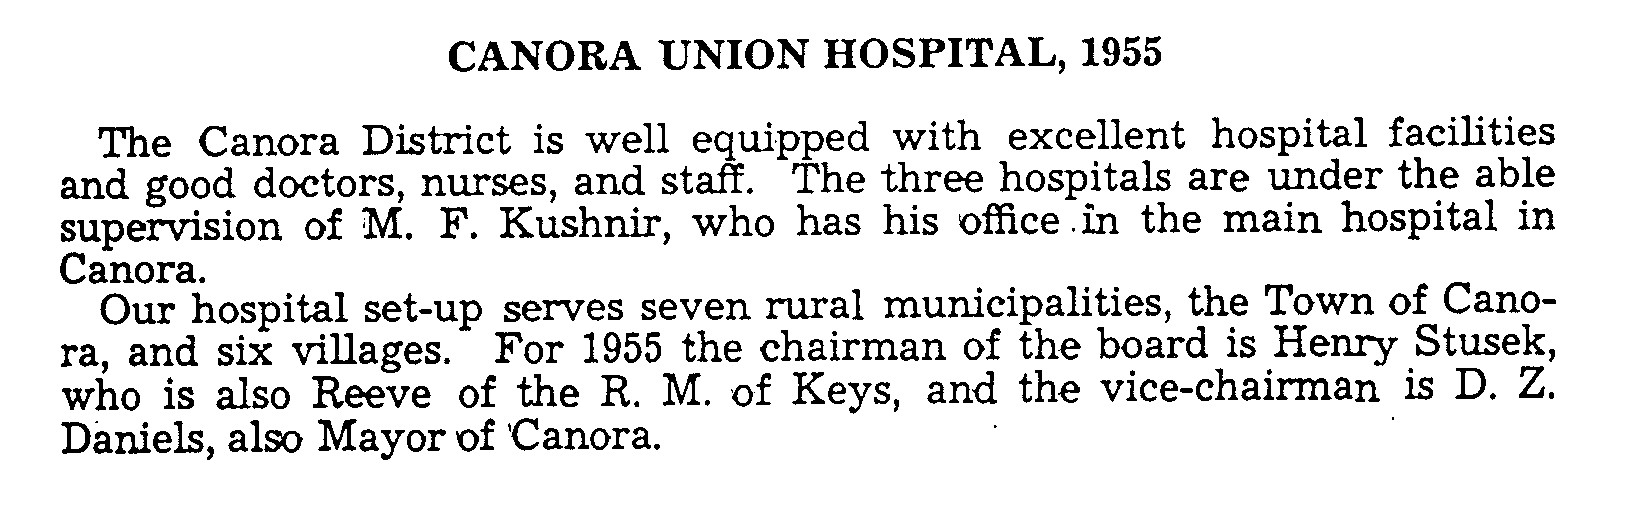 Historical Background on Canora Union Hospital  1